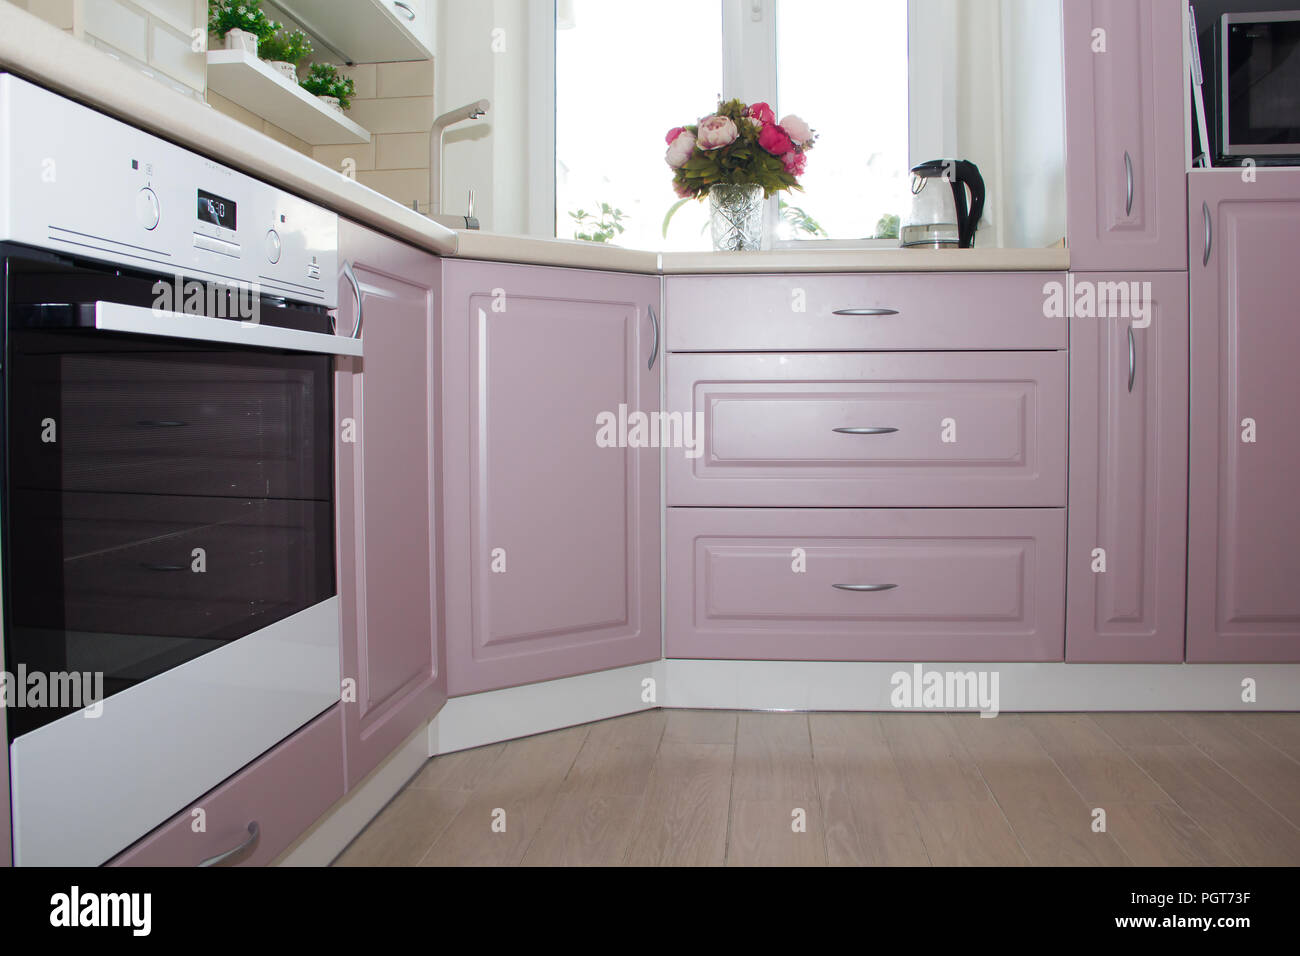 4621ff2acfbd Large light pink kitchen. Interior of a pink kitchen. Wooden Kitchen  Design. Russia, St. Petersburg, June 2018